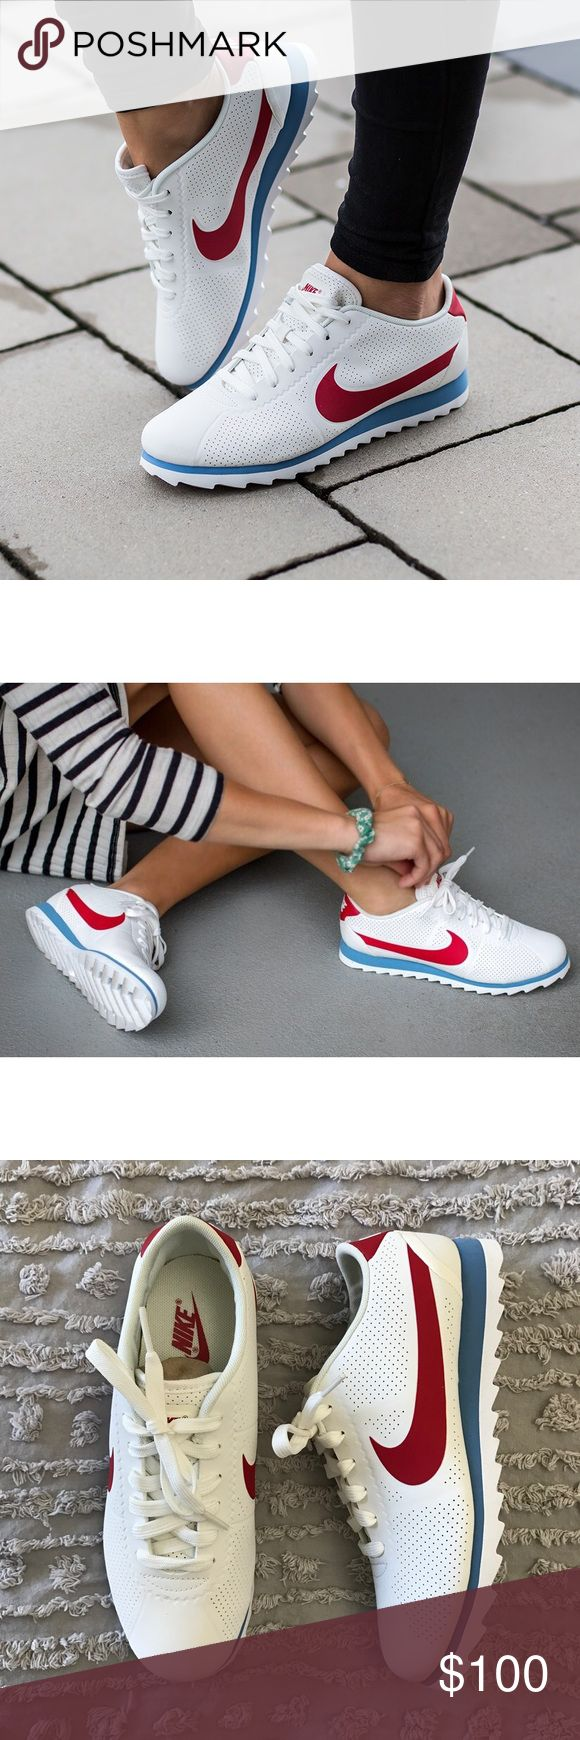 Nike Cortez Ultra Moire Sneakers •The Nike Cortez Ultra Moire Women's Shoe revamps Nike's first running shoe with a modern appeal.  •Women's 7, true to size.  •New in box, no lid.  •NO TRADES/HOLDS/PAYPAL/MERC/VINTED/NONSENSE. Nike Shoes Sneakers